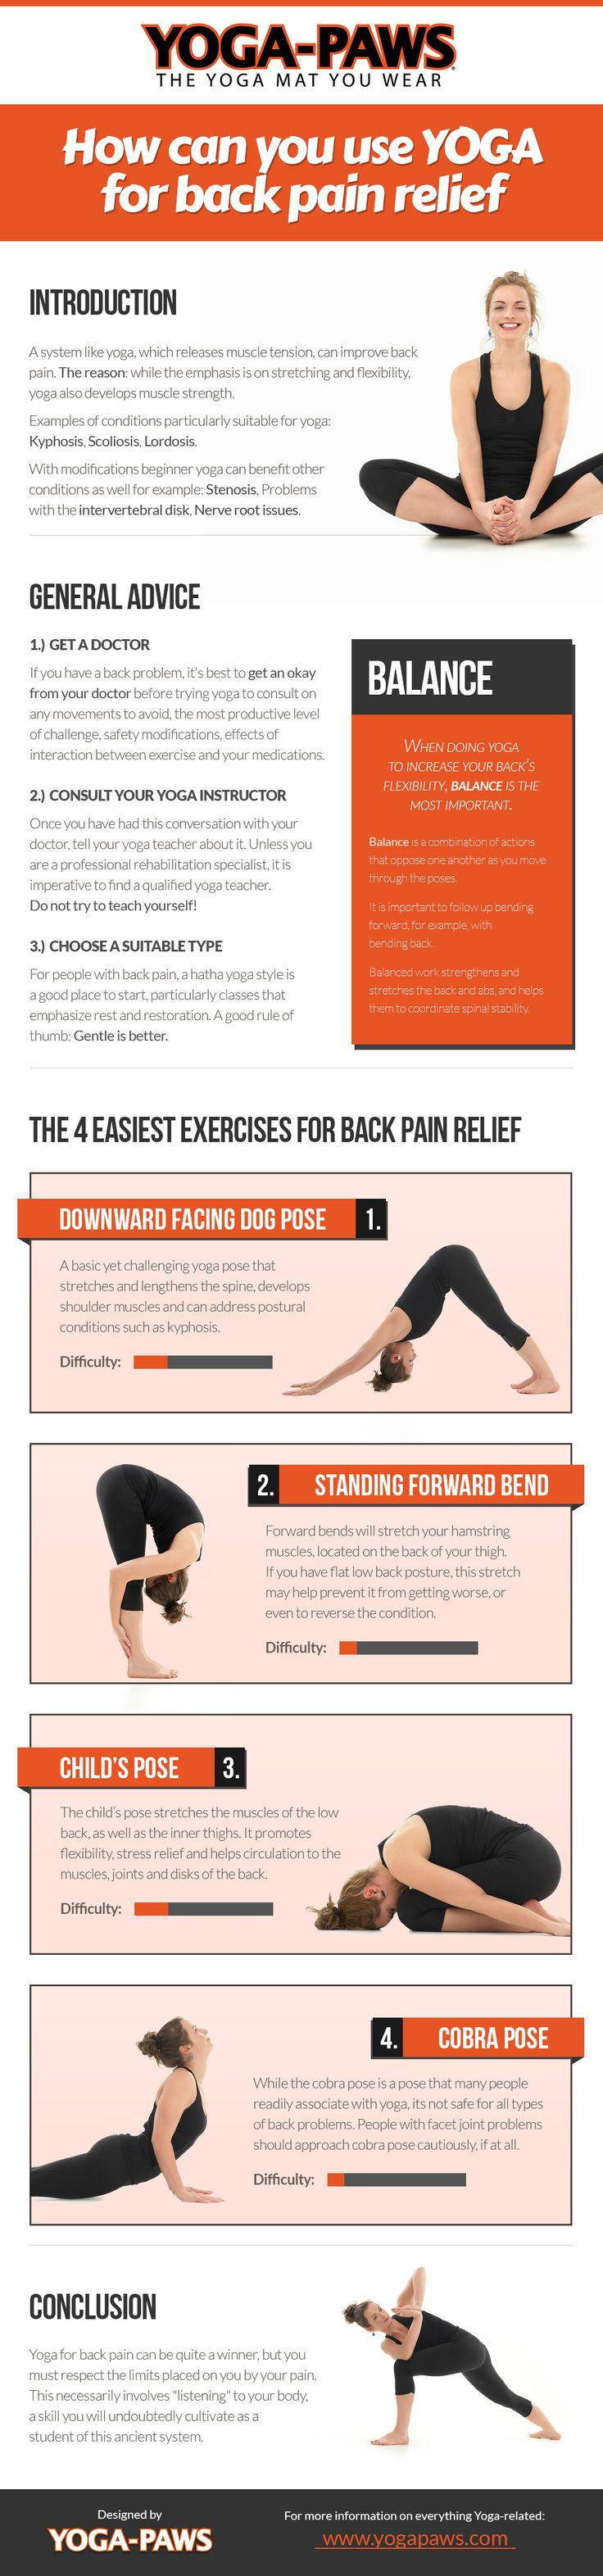 Infographic: Yoga Poses for Back Pain